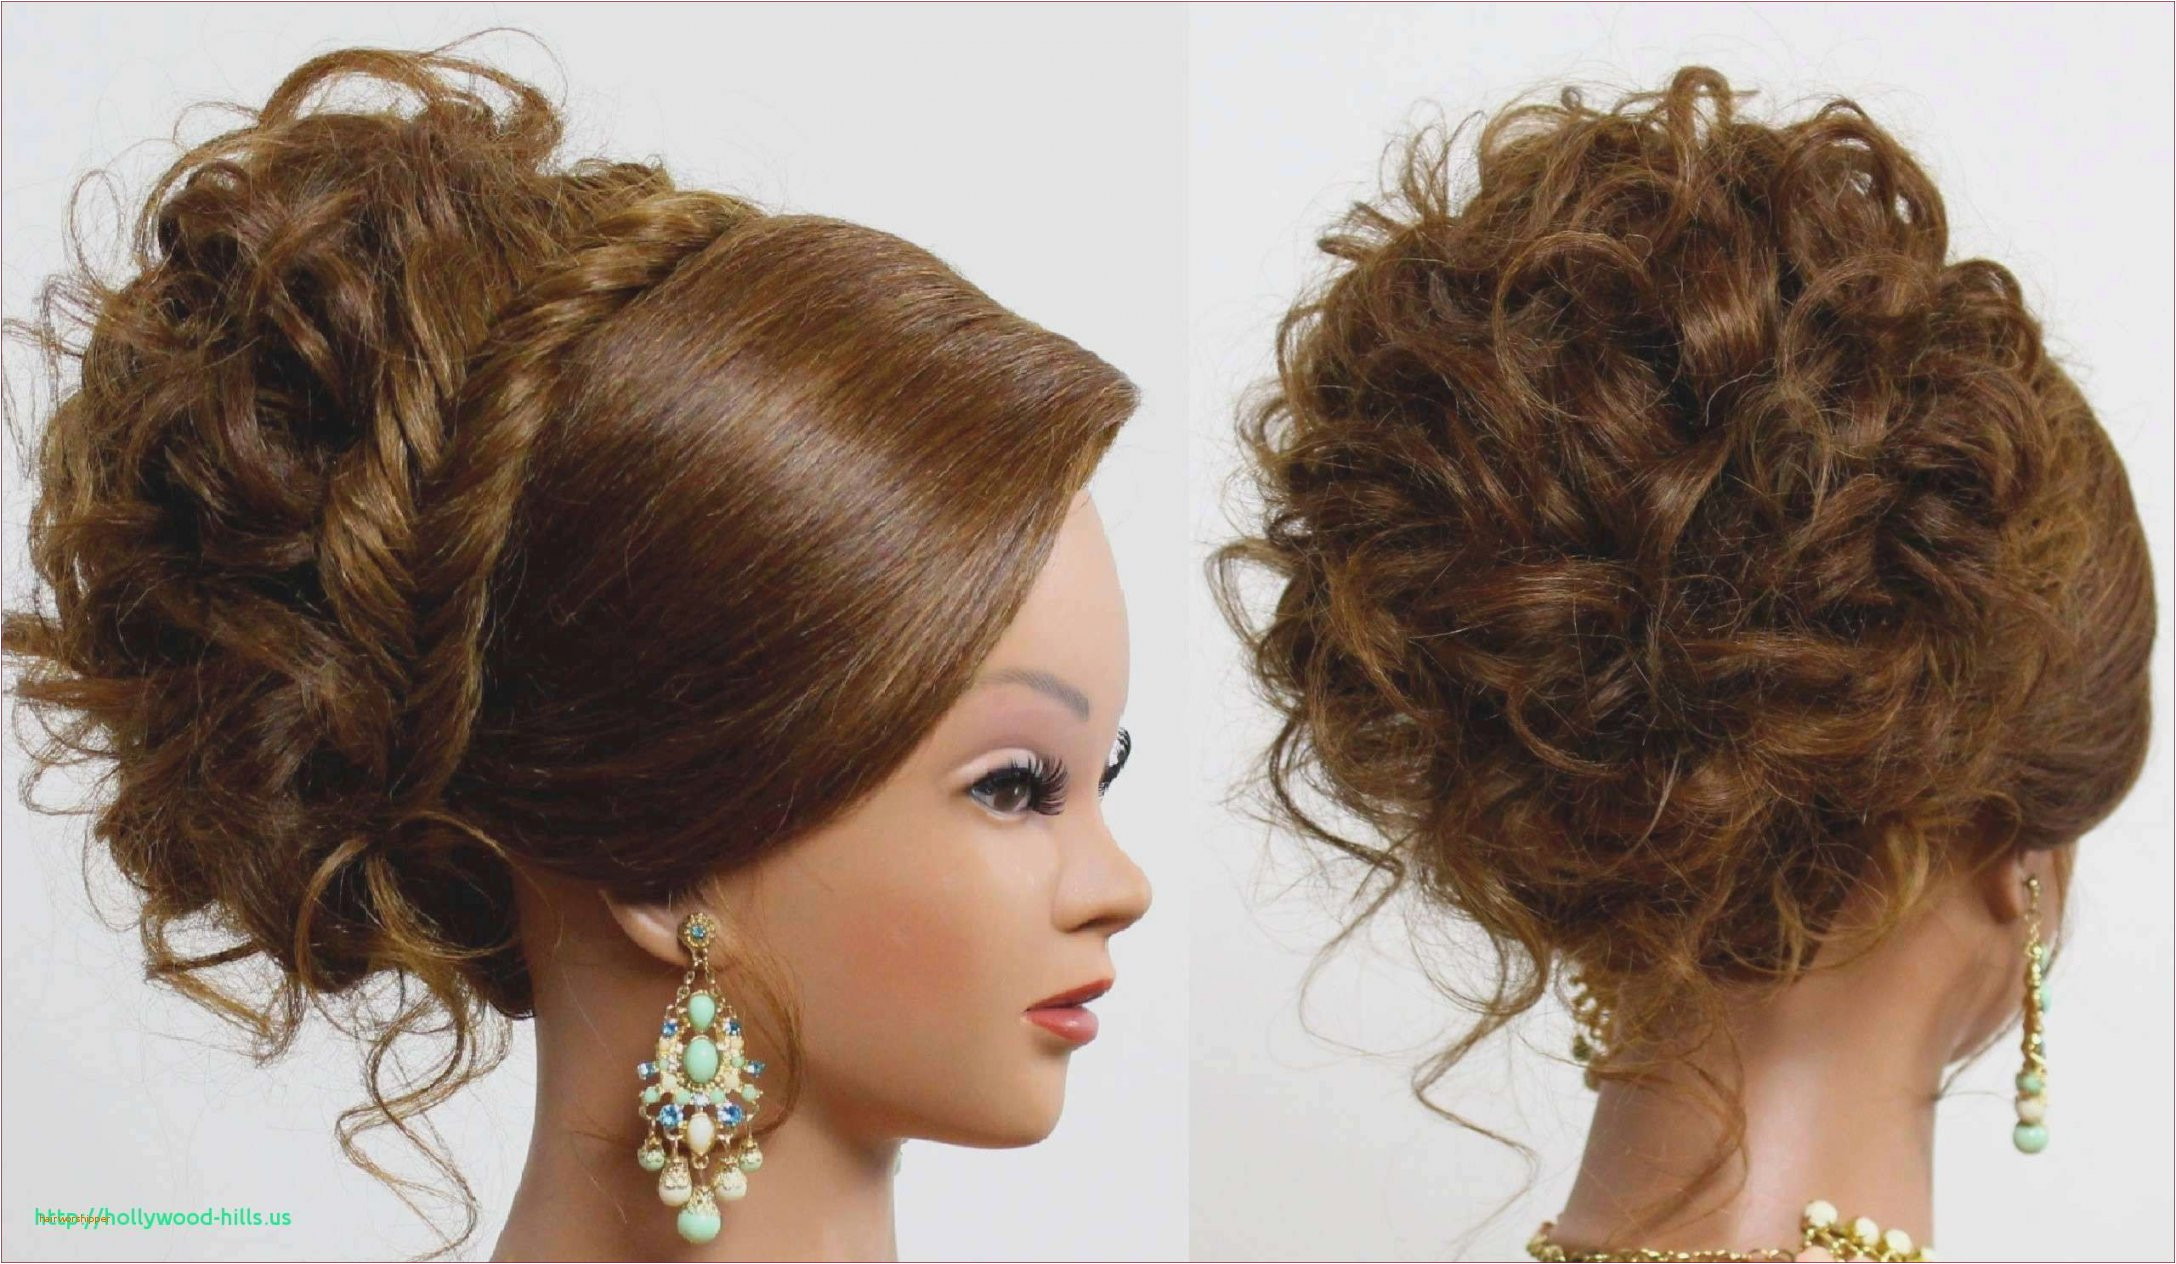 Prom Hairstyles Updos Unique Hairstyles for Prom Updos Bridal Hairstyle 0d Wedding Hair Luna Prom Convenient Wedding Hairstyles Down And Curly